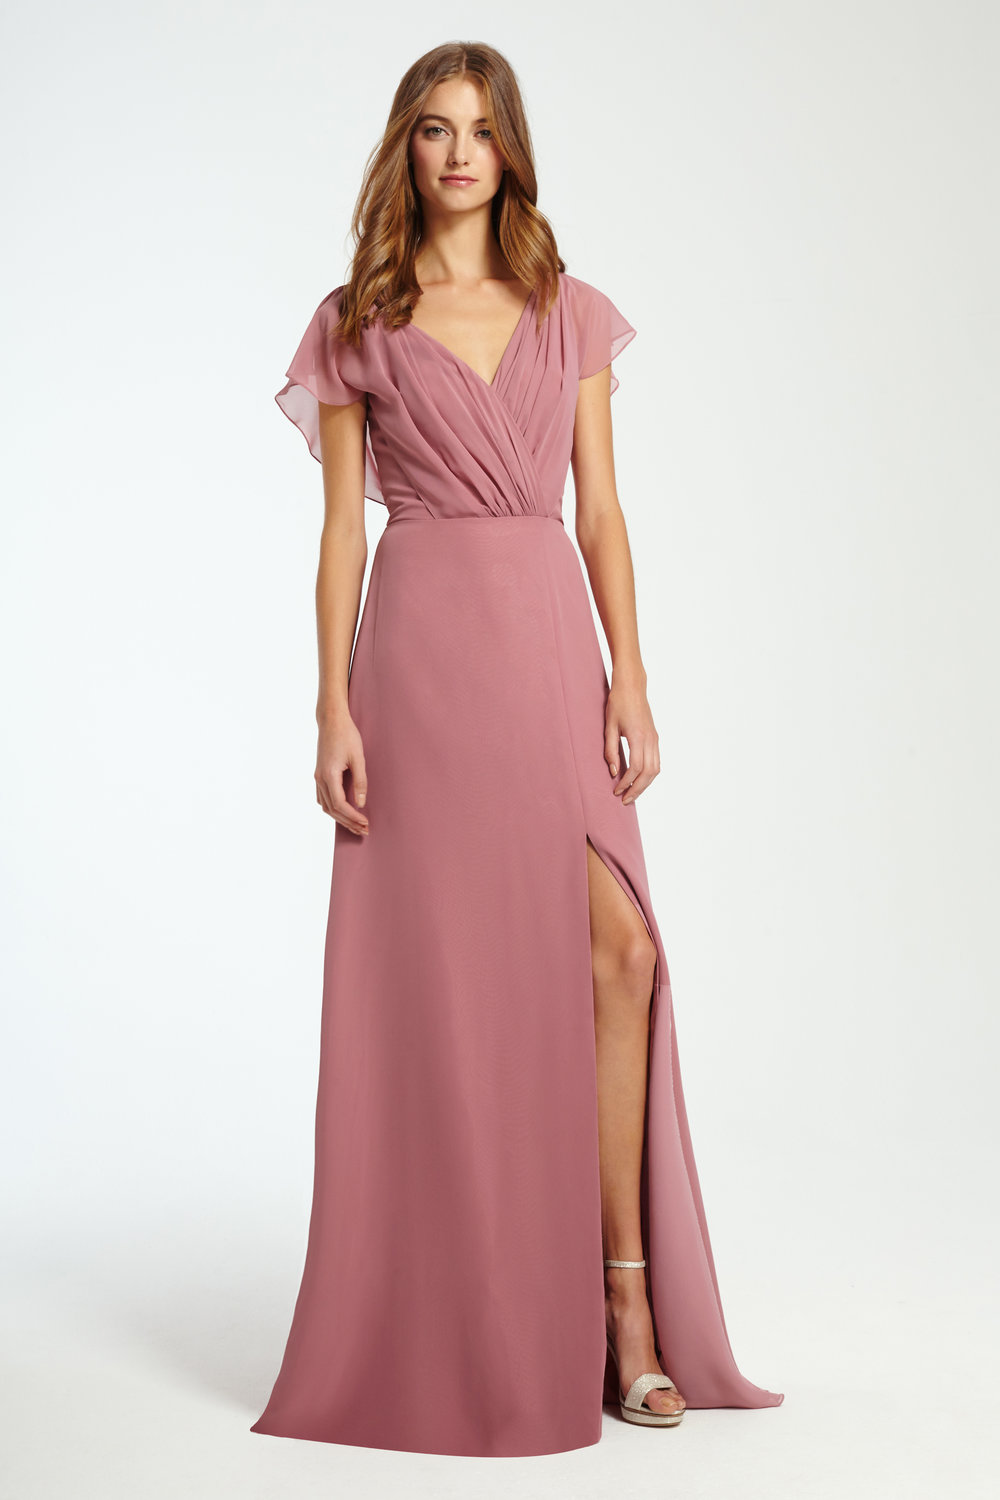 Monique Lhuillier Gwen-450355